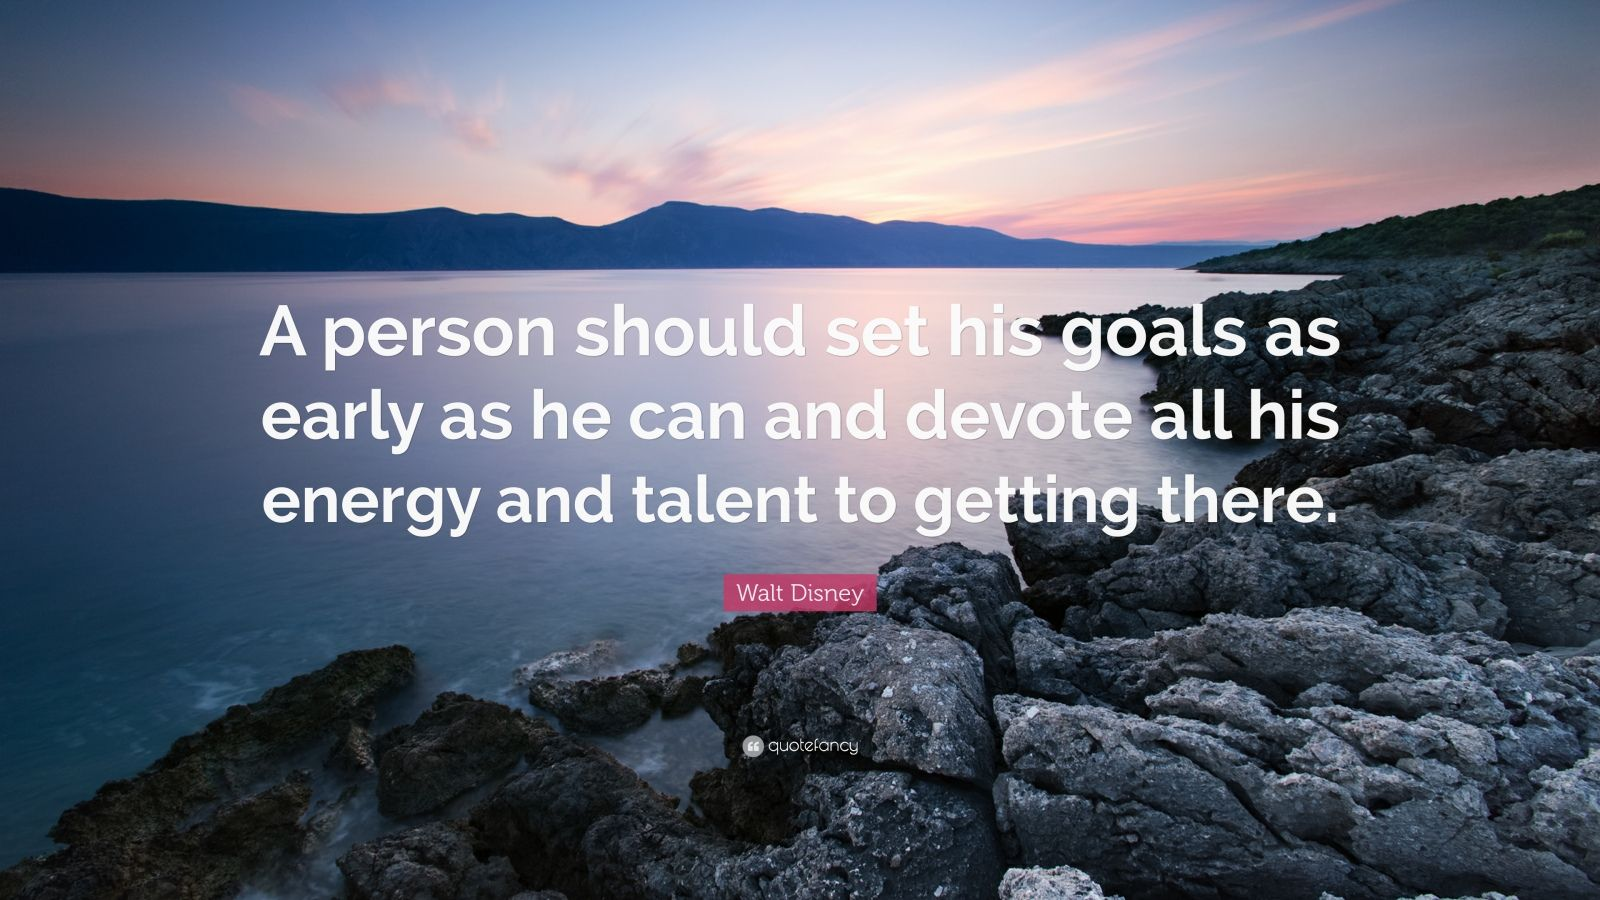 """Walt Disney Quote: """"A person should set his goals as early as he can and devote all his energy and talent to getting there."""""""